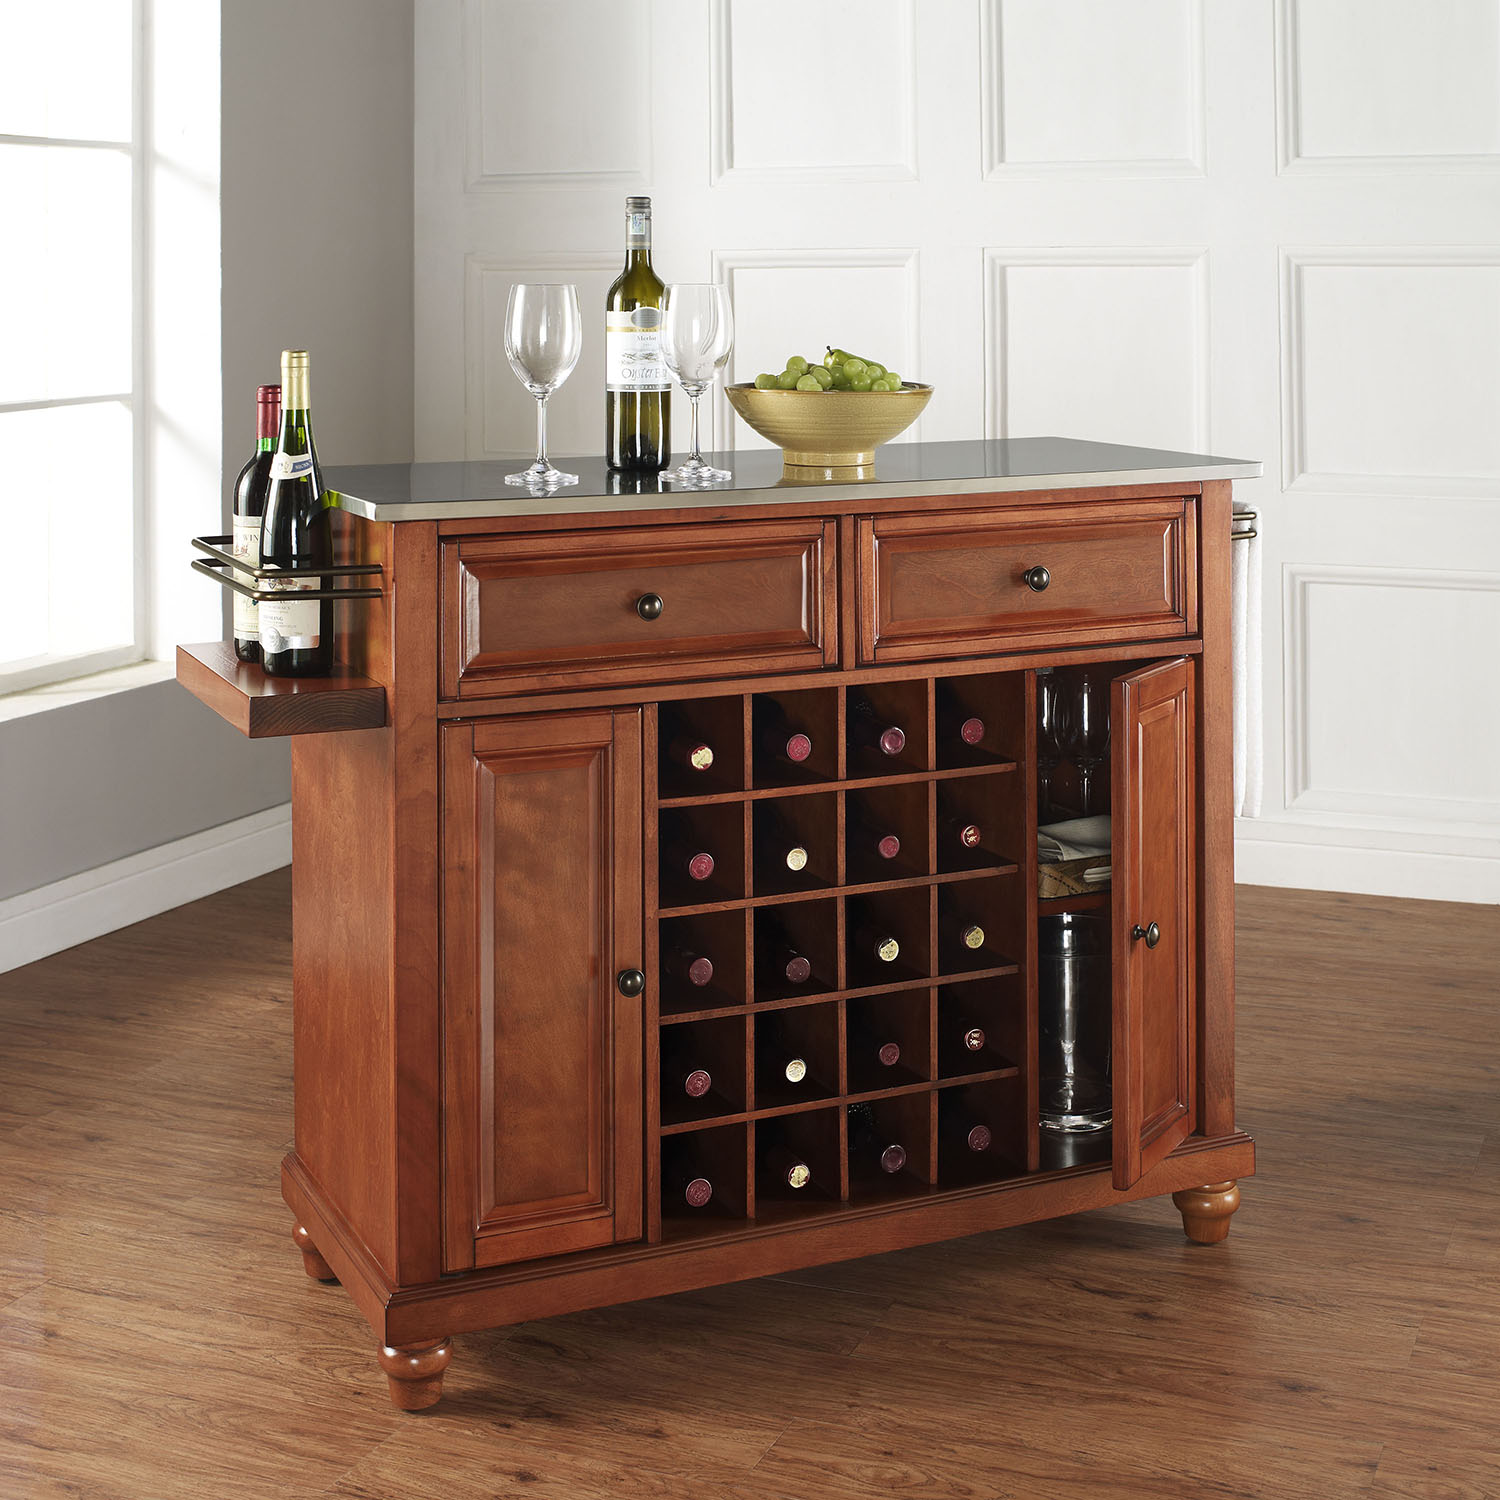 Cambridge Wine Island - Stainless Steel Top, Classic Cherry - CROS-KF31002DCH